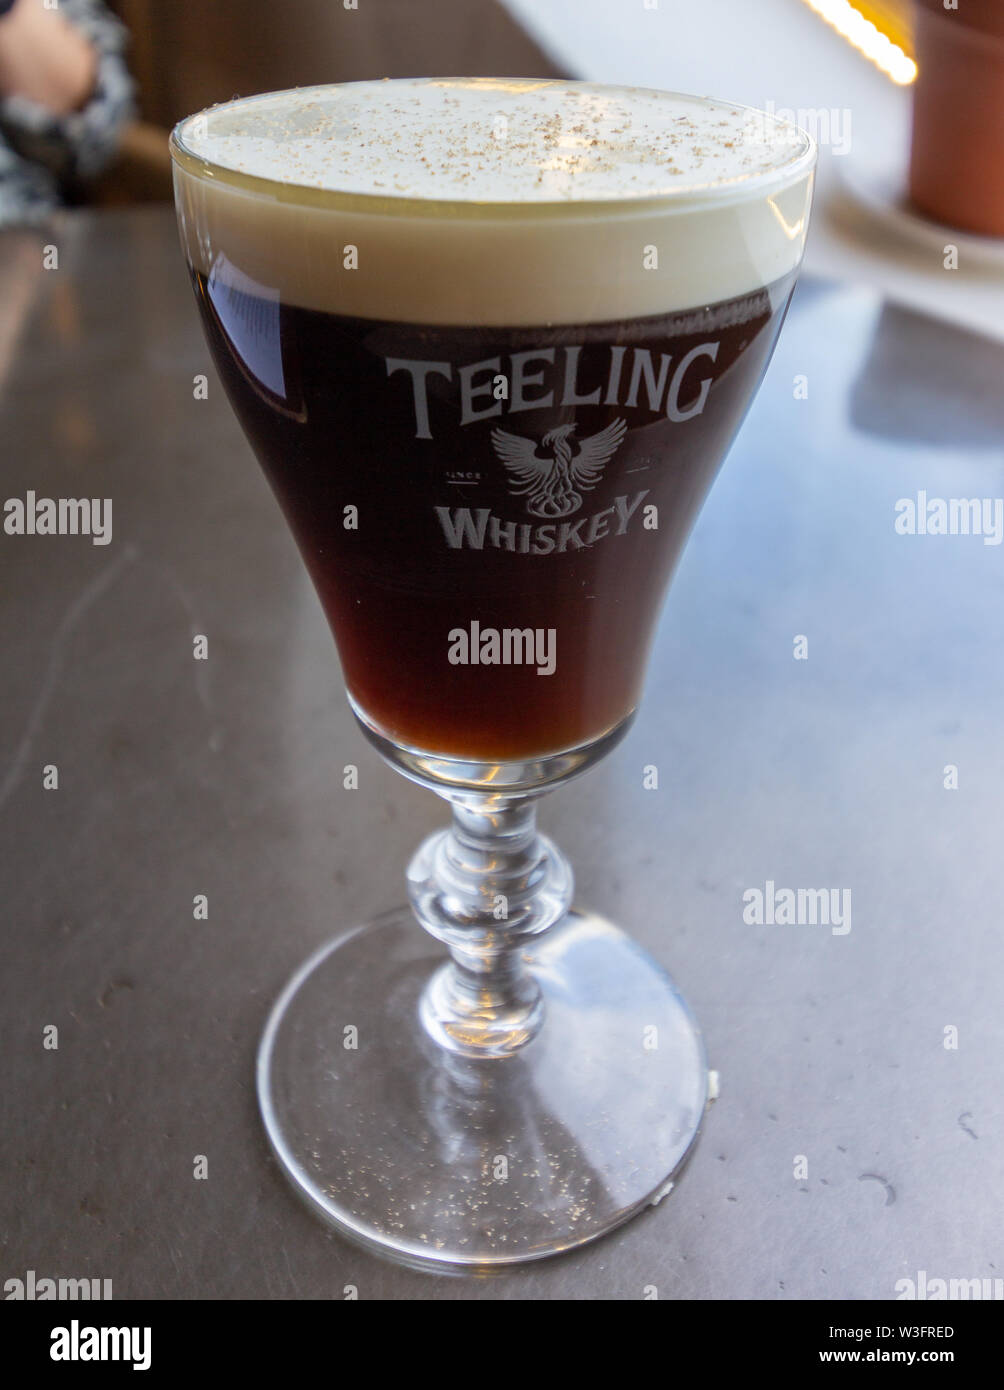 Dublin, Ireland - January 20, 2019 - In the Teeling Distillery tasting room whiskey based cocktails can be purchased. Pictured is an Irish coffee in l - Stock Image